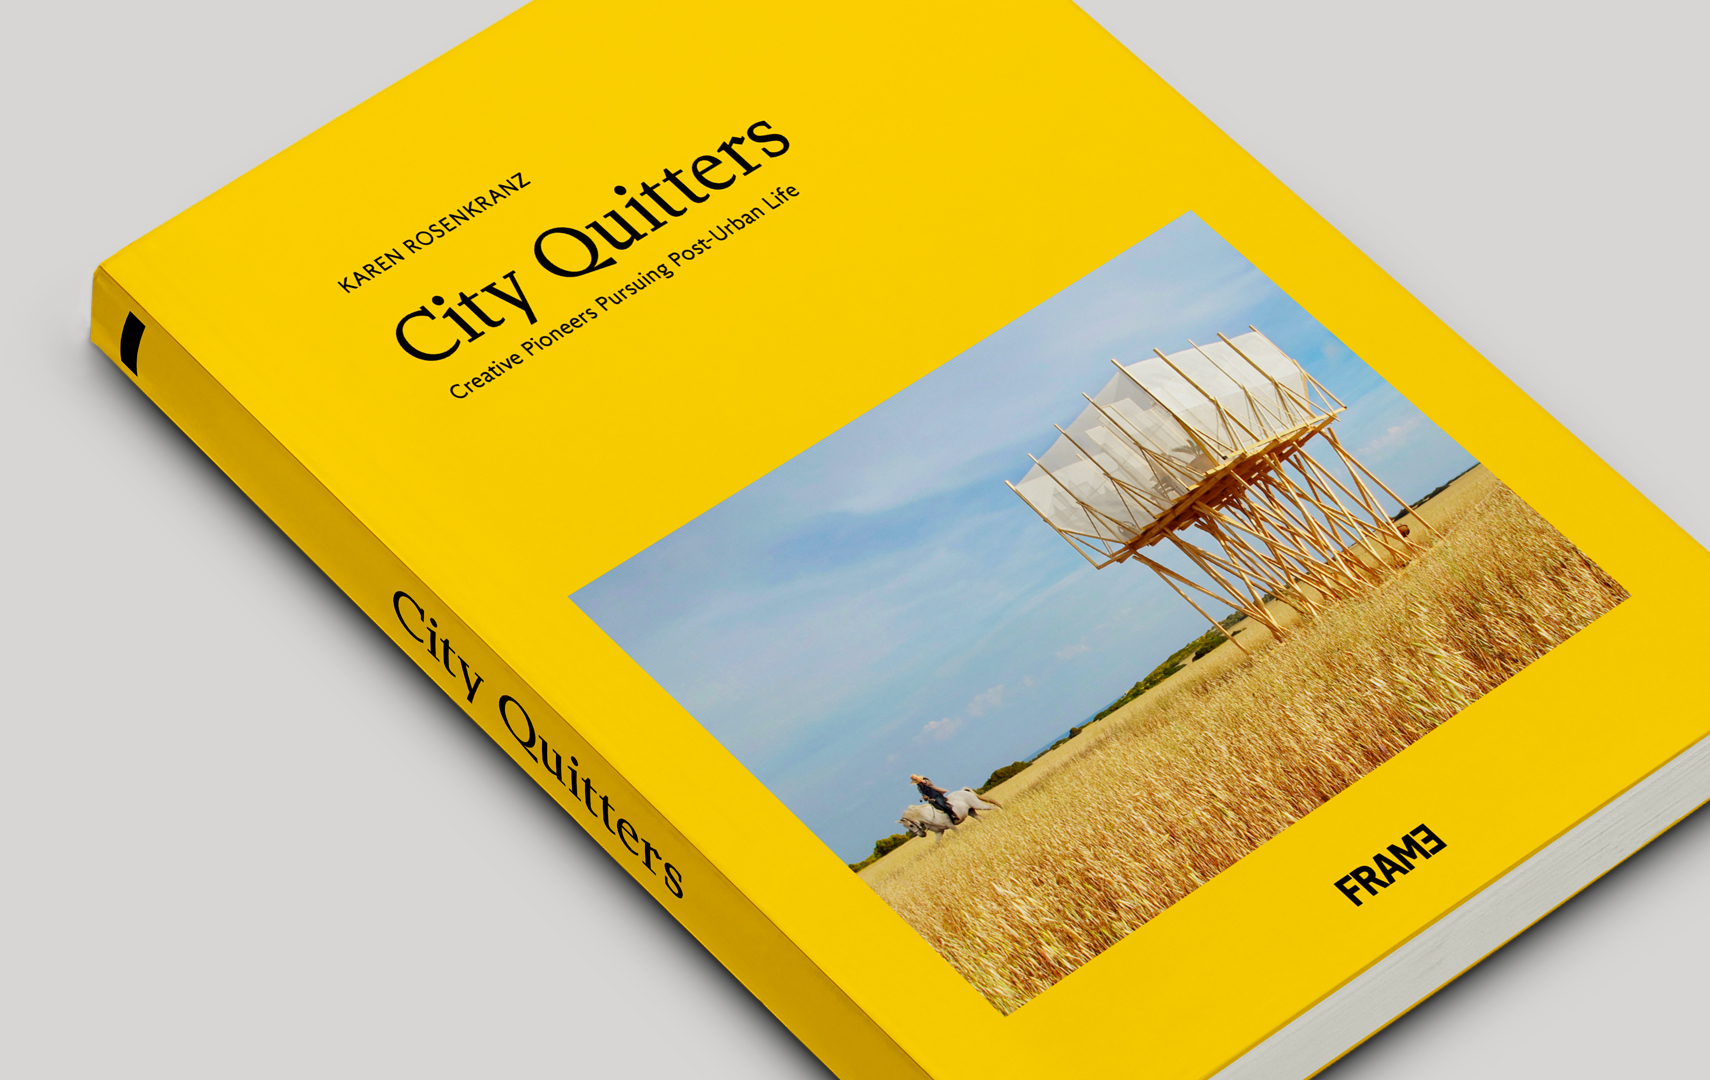 City Quitters Book — Karen Rosenkranz